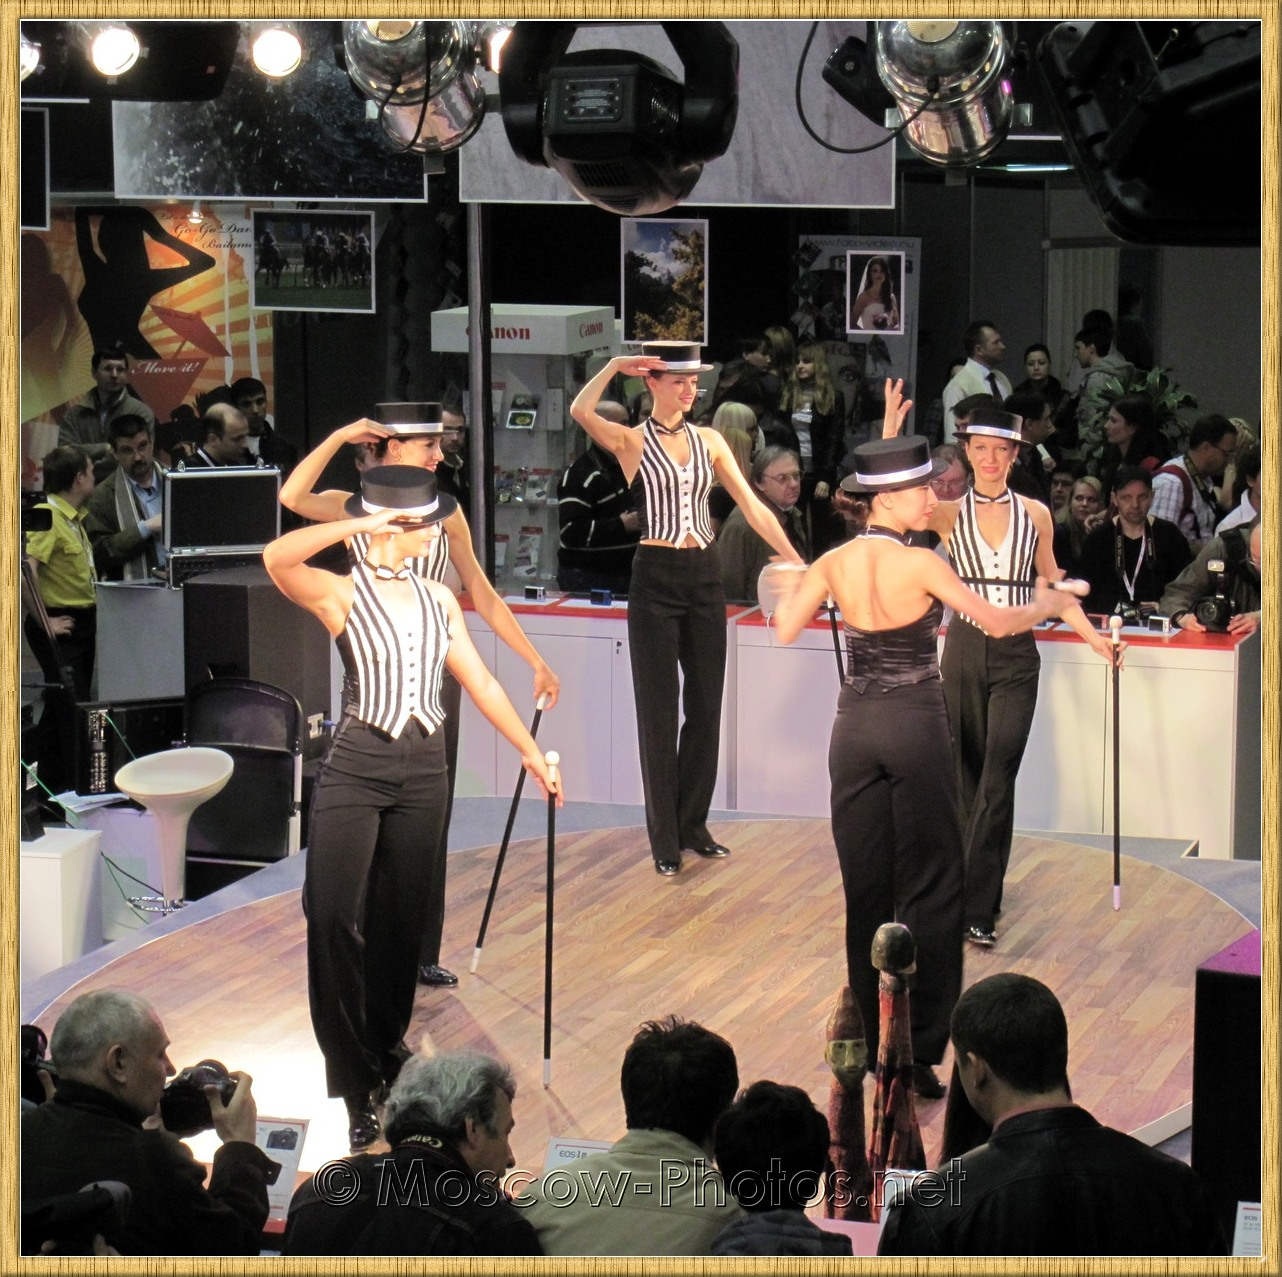 Dancing girls with hats and canes